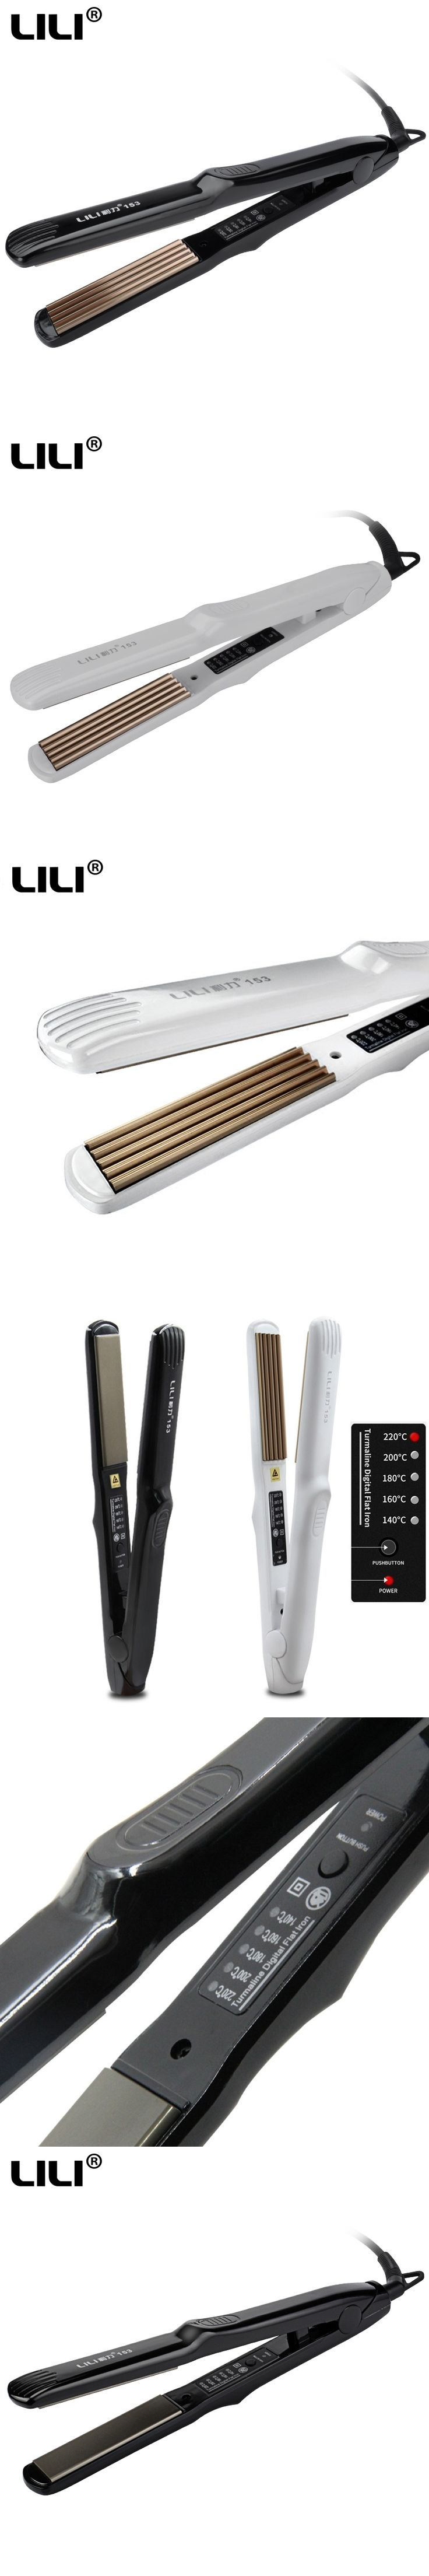 Ceramic Hair Straightener flat iron professional Electric Hair Straightening Irons 5 gears Temp hair Curling iron Styling Tool